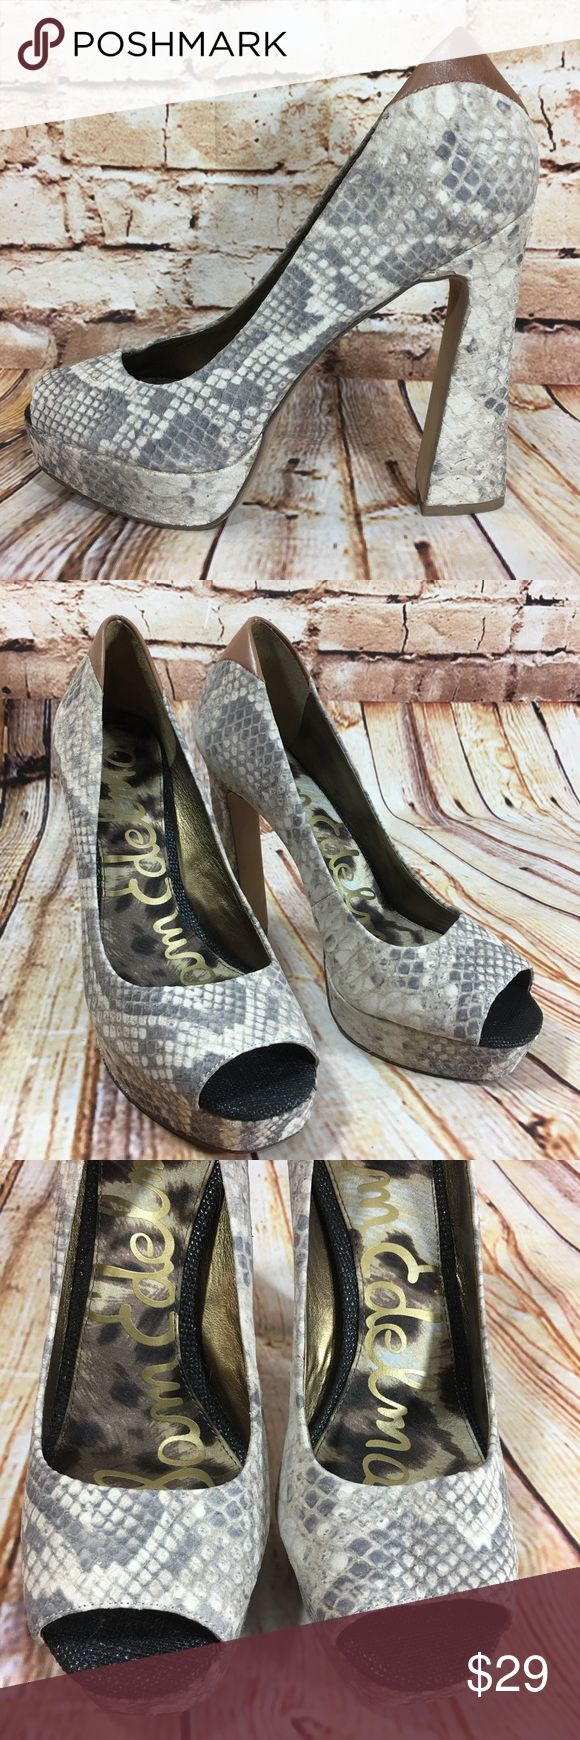 NEW Sam Edelman Tacoma Snake Print Leather Heels Brand new high heeled shoes / pumps. Soft leather snake print. Please see pics for more details on condition (: Sam Edelman Shoes Heels